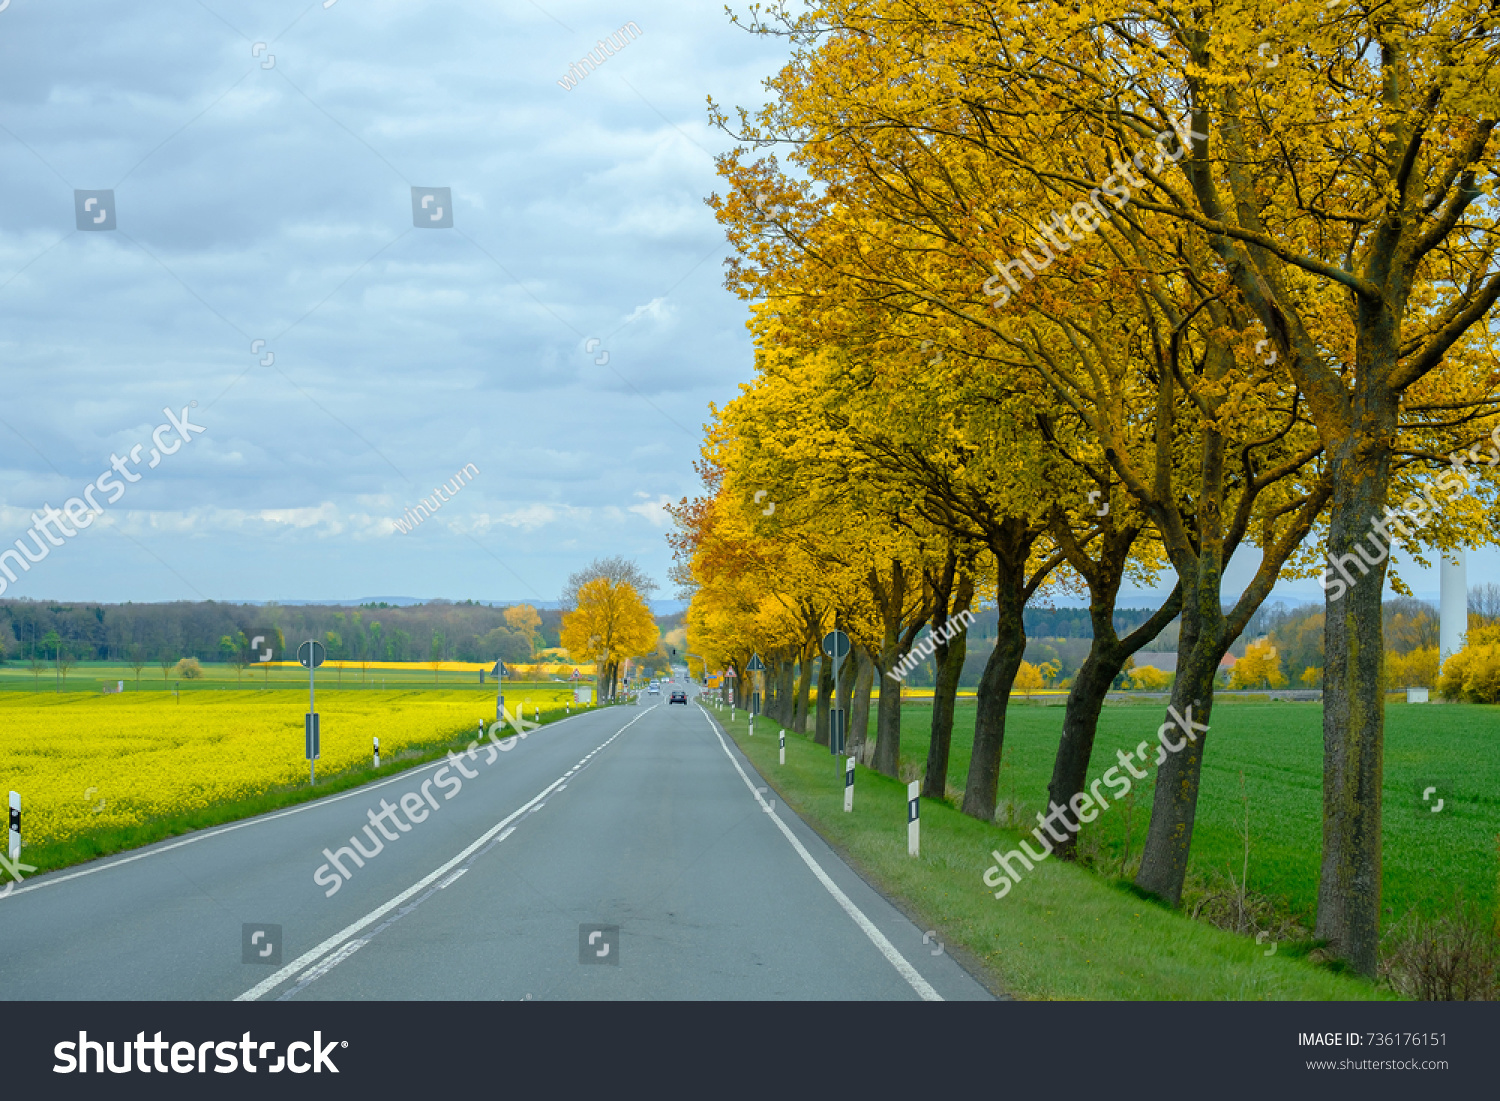 Small Road Yellow Flowers Trees On Stock Photo Edit Now 736176151